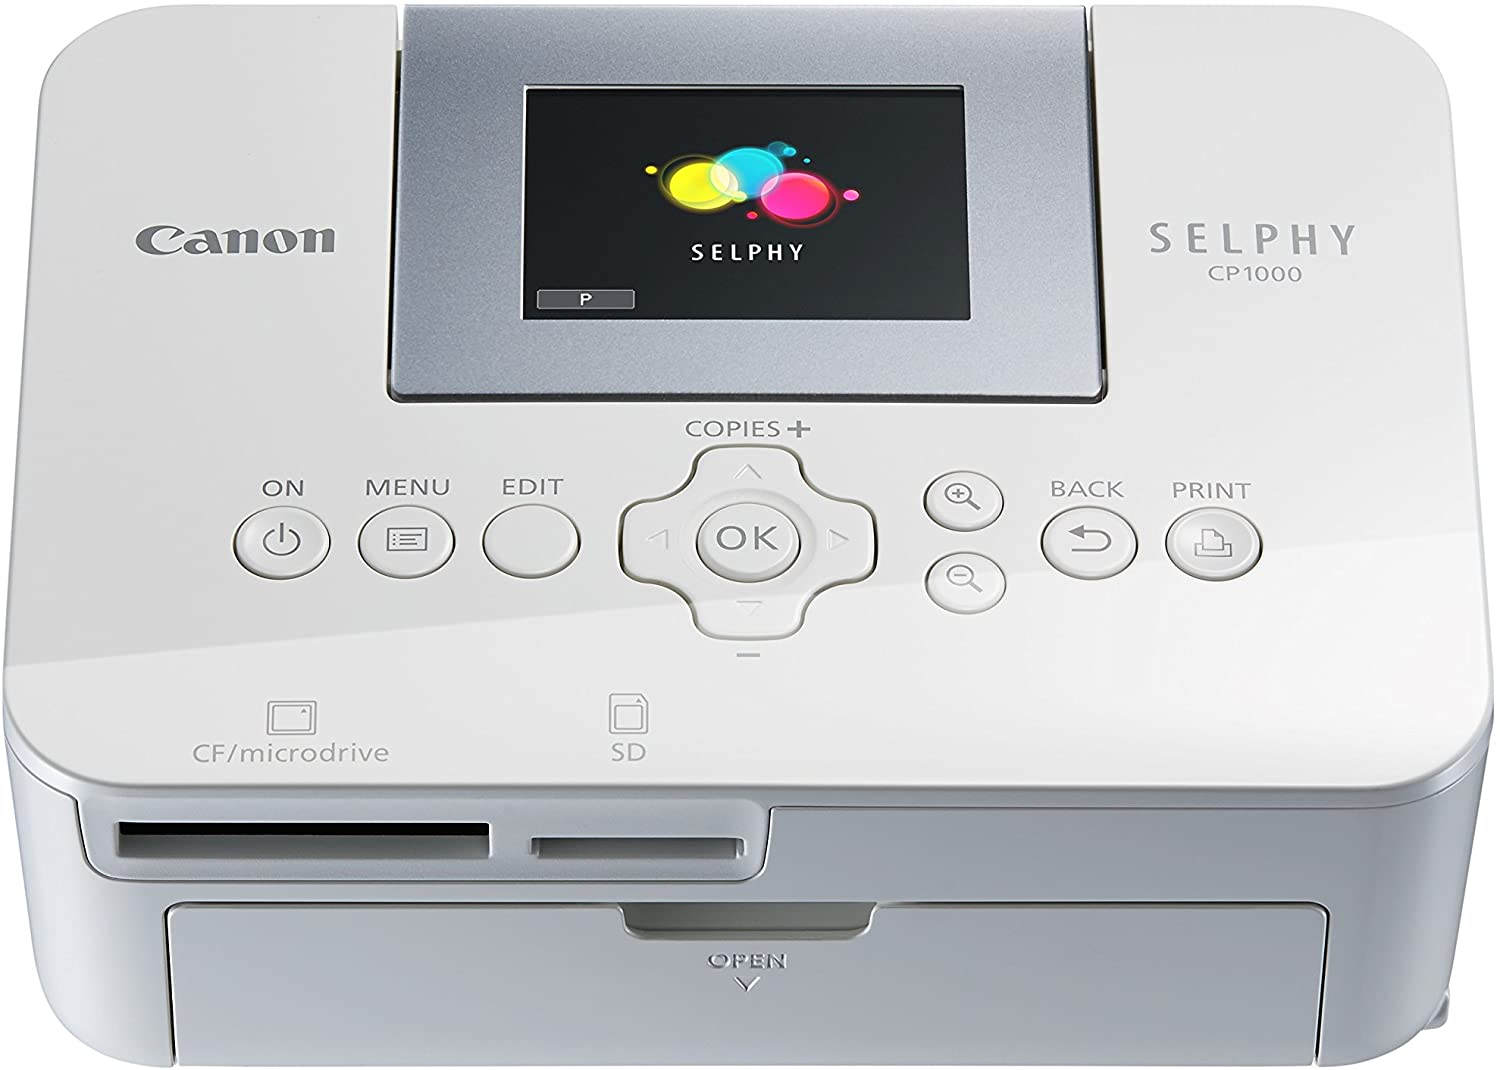 Canon SELPHY CP1000 Photo Printer, White uk reviews